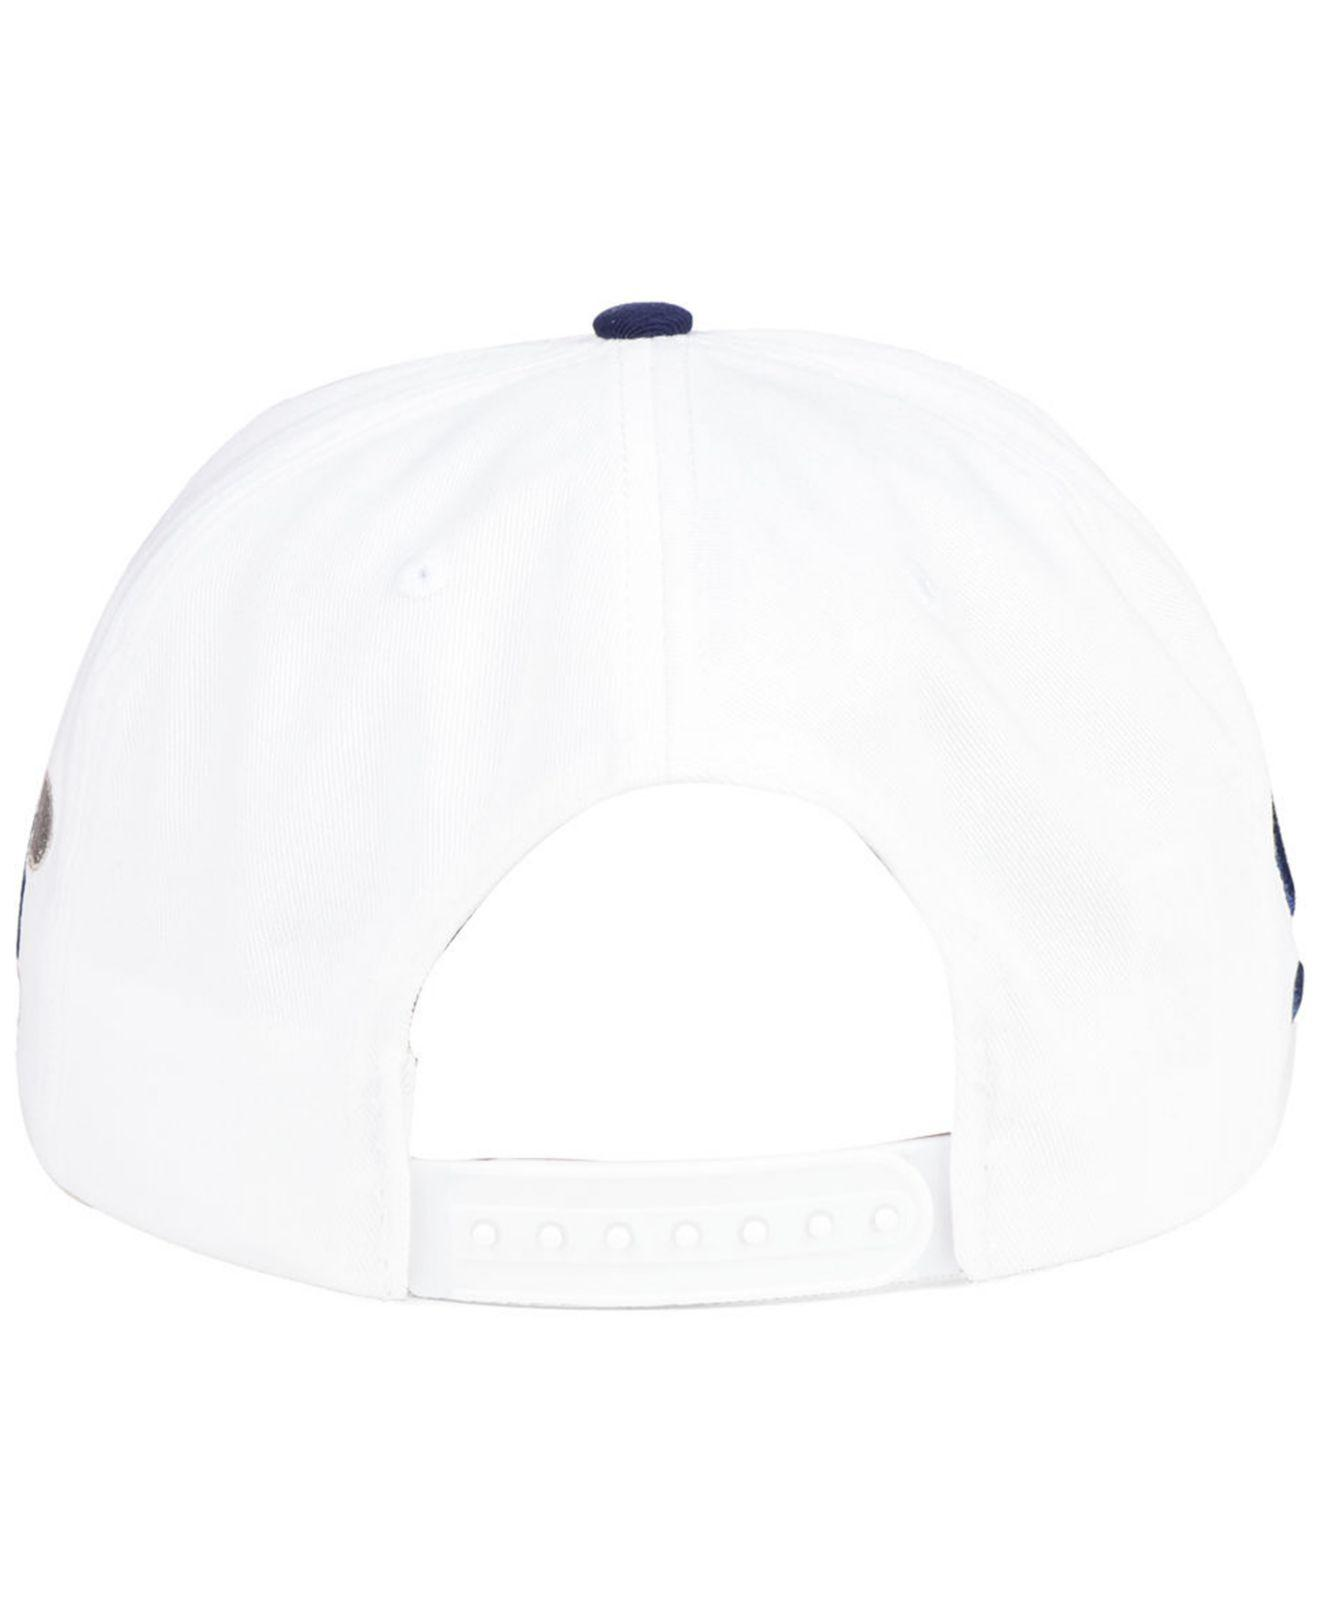 buy popular e66b5 cac7e Nike Penn State Nittany Lions Sport Specialties Snapback Cap in ...